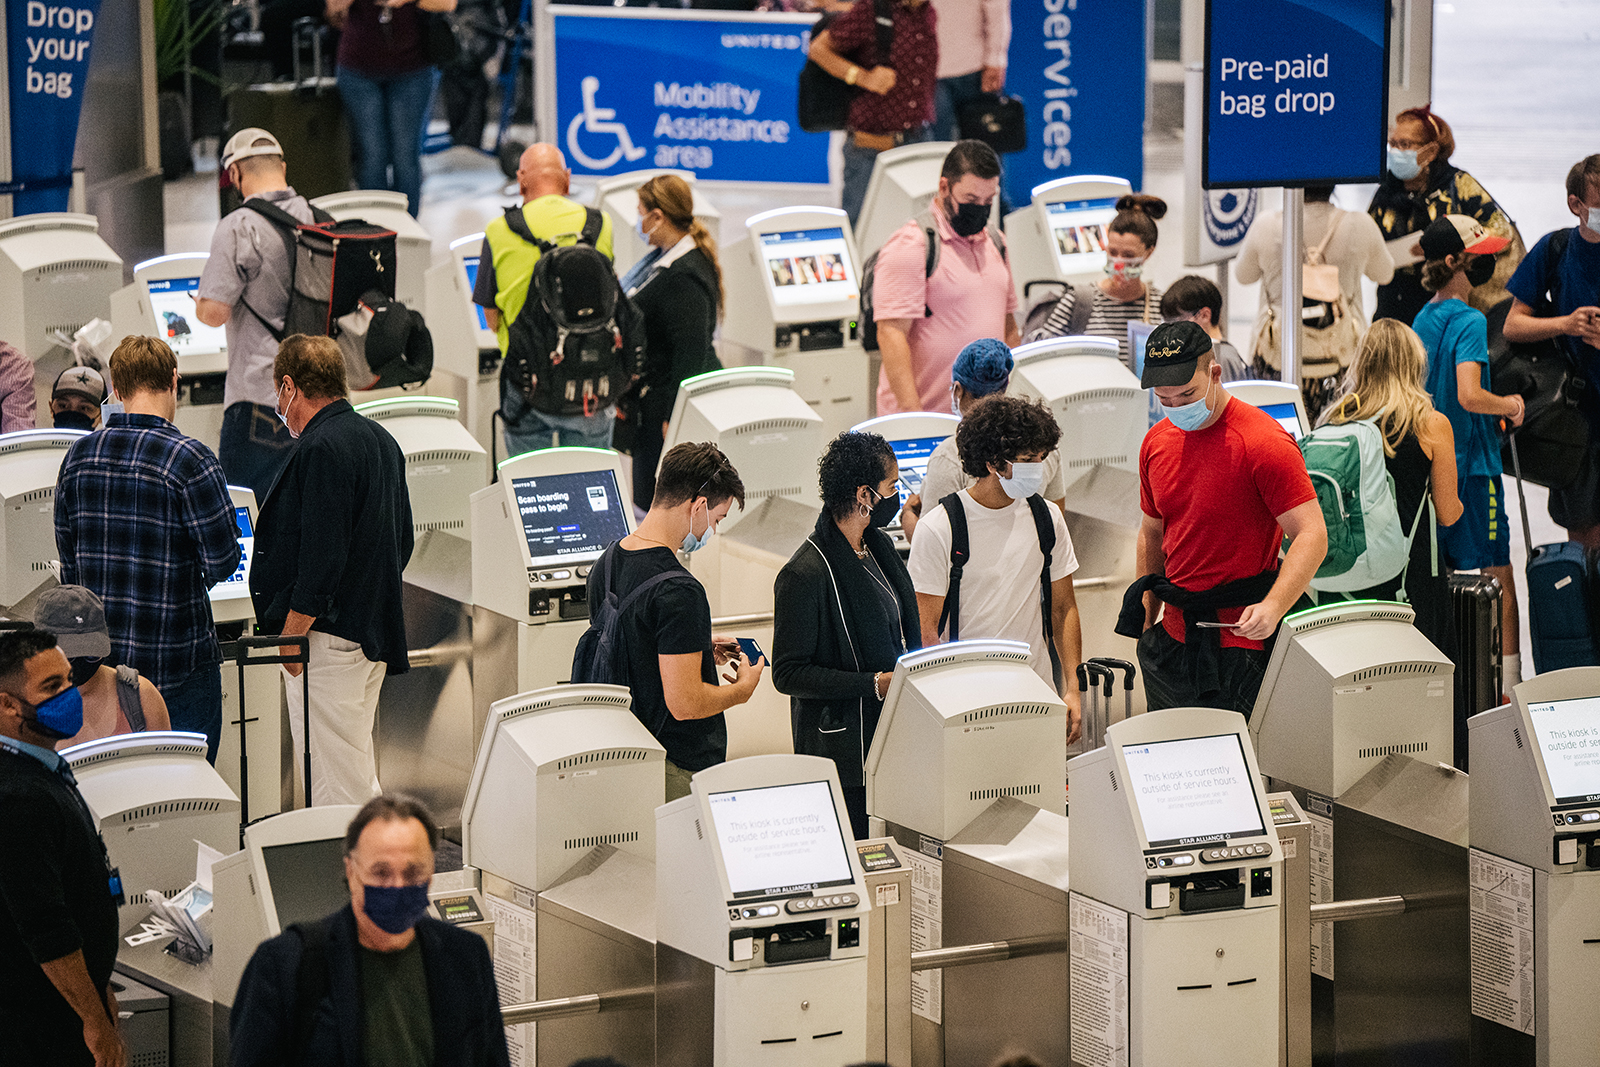 People check in for departure flights at the George Bush Intercontinental Airport on August 5, 2021 in Houston.